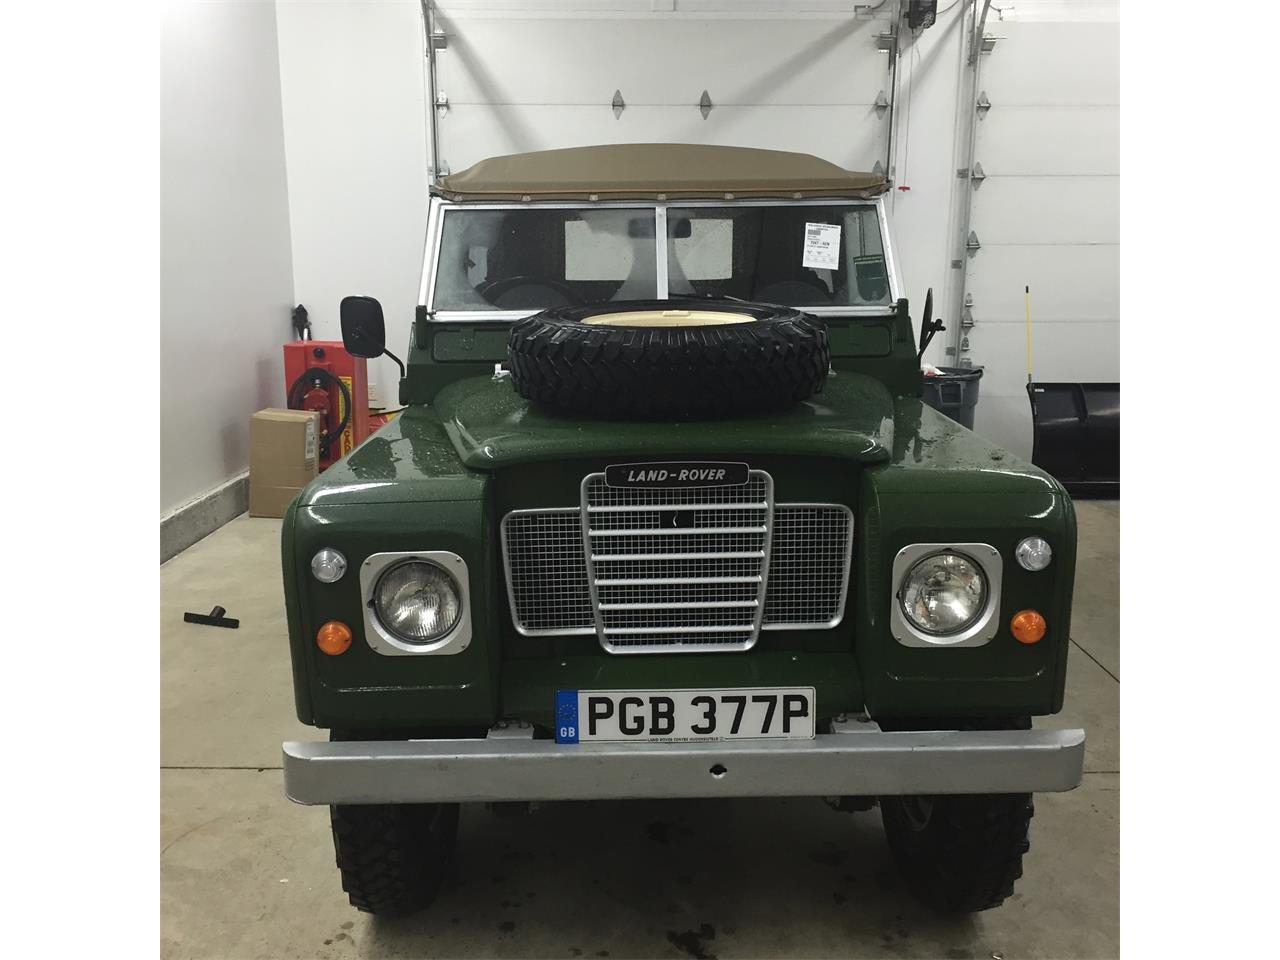 Large Picture of 1976 Land Rover Series II 88 located in New Hampshire Offered by a Private Seller - Q5DA